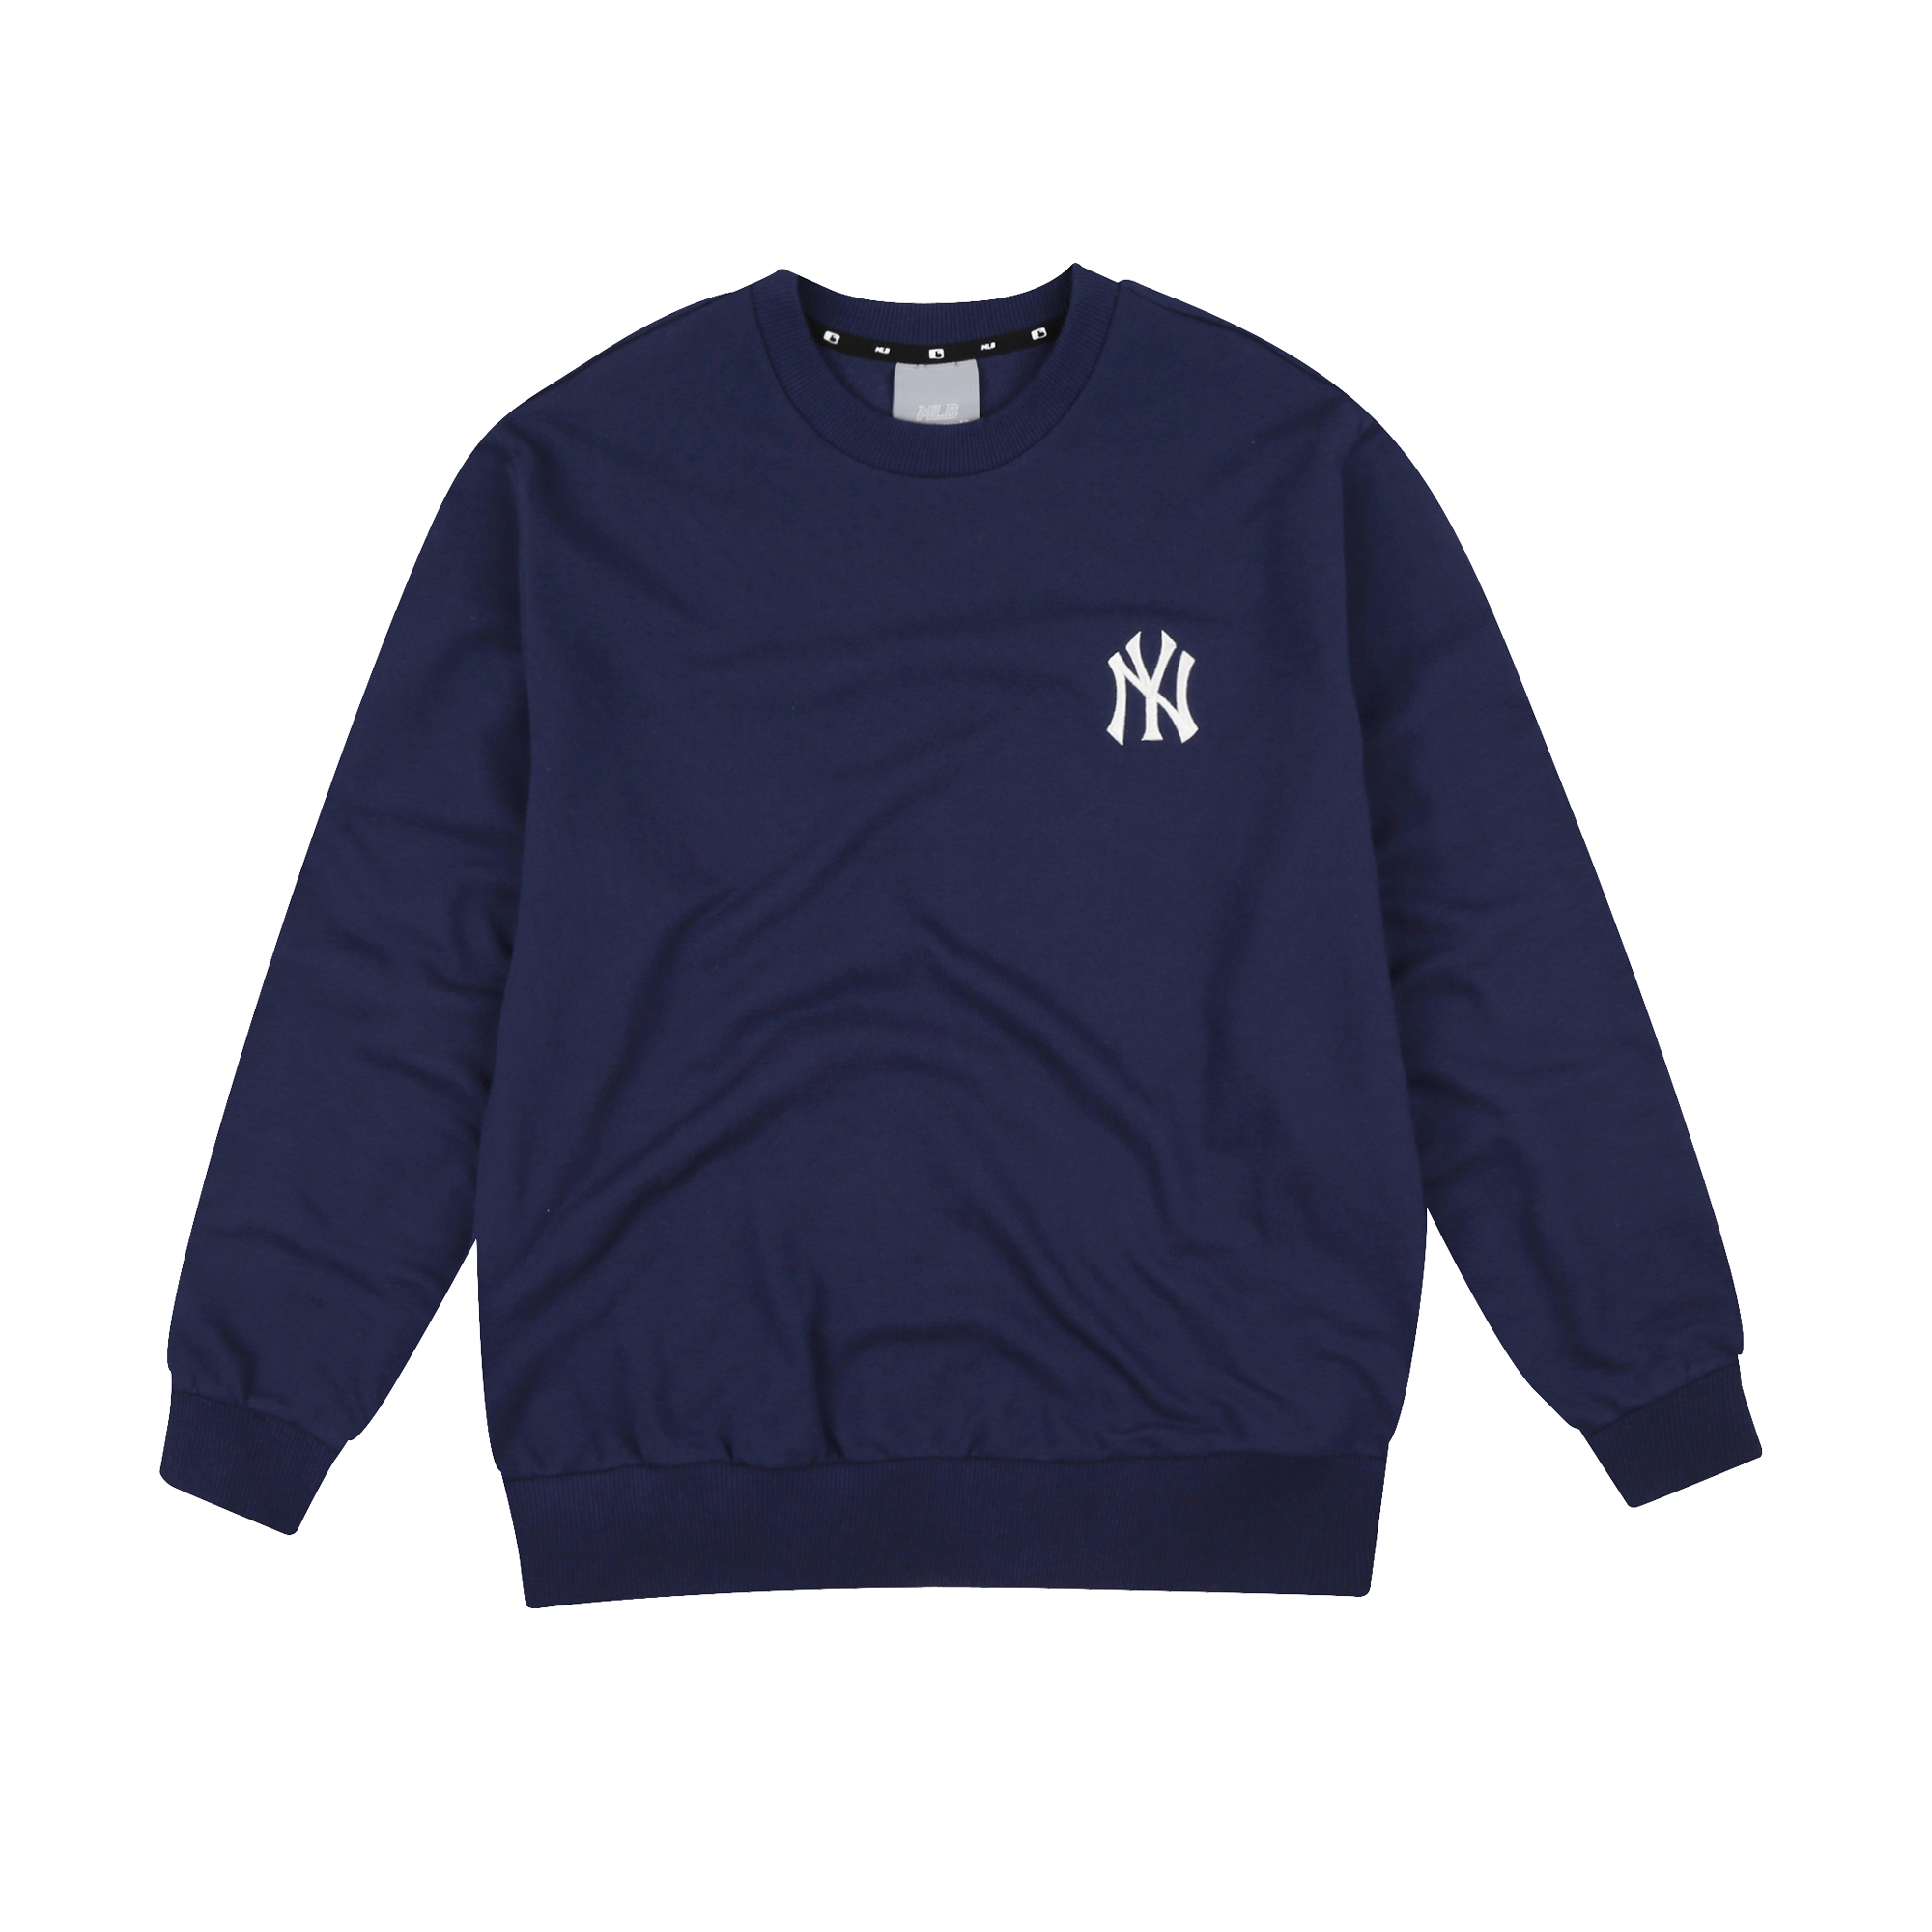 NEW YORK YANKEES SIGNATURE SMALL LOGO SWEATSHIRT